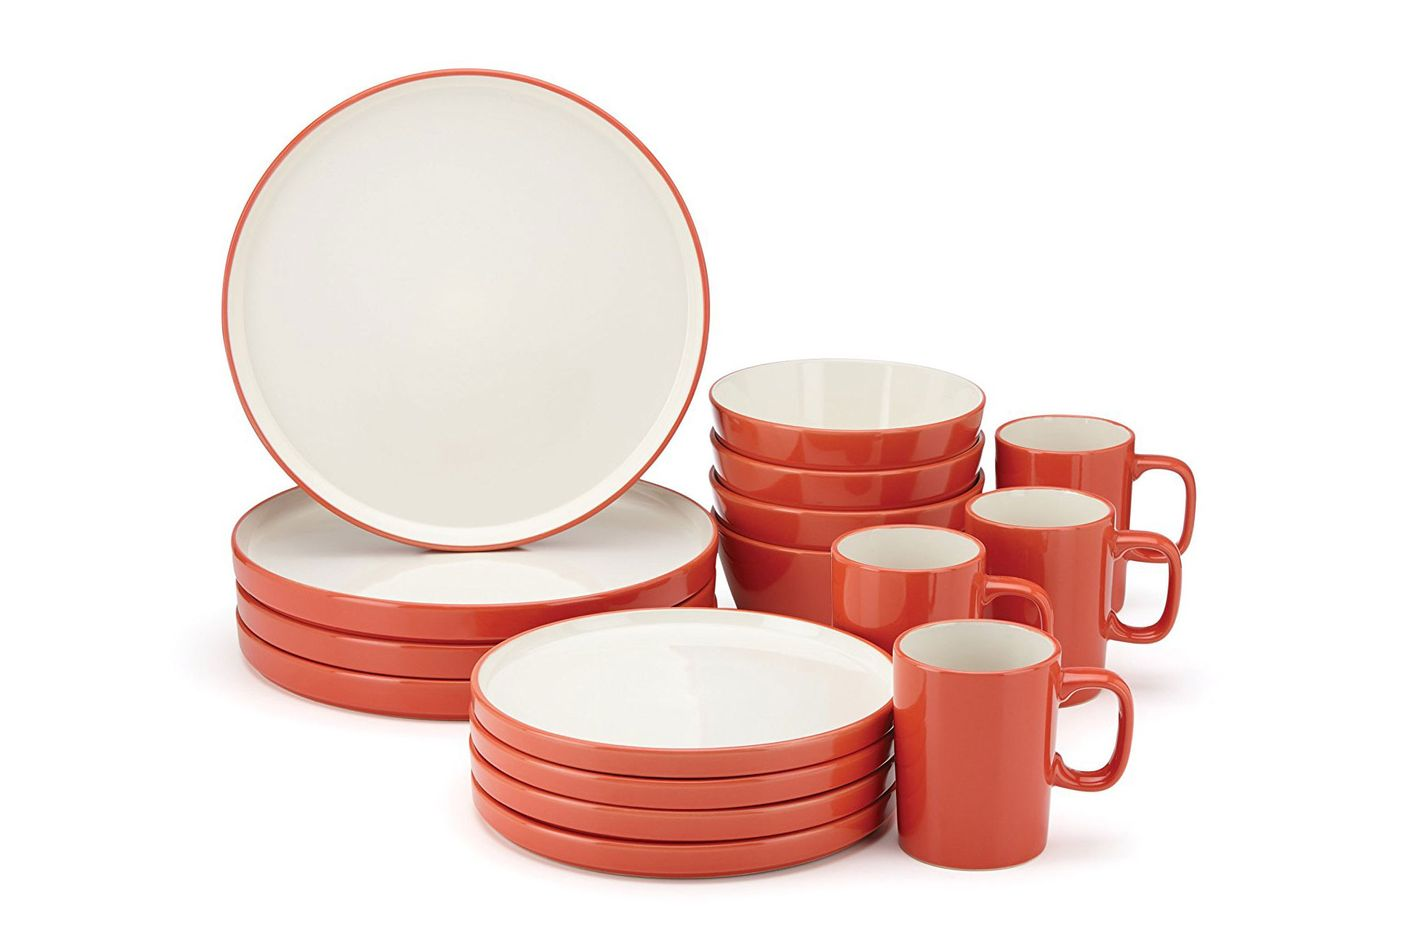 Food & Wine For Gorham Modern Farmhouse 16 Piece Dinnerware Set